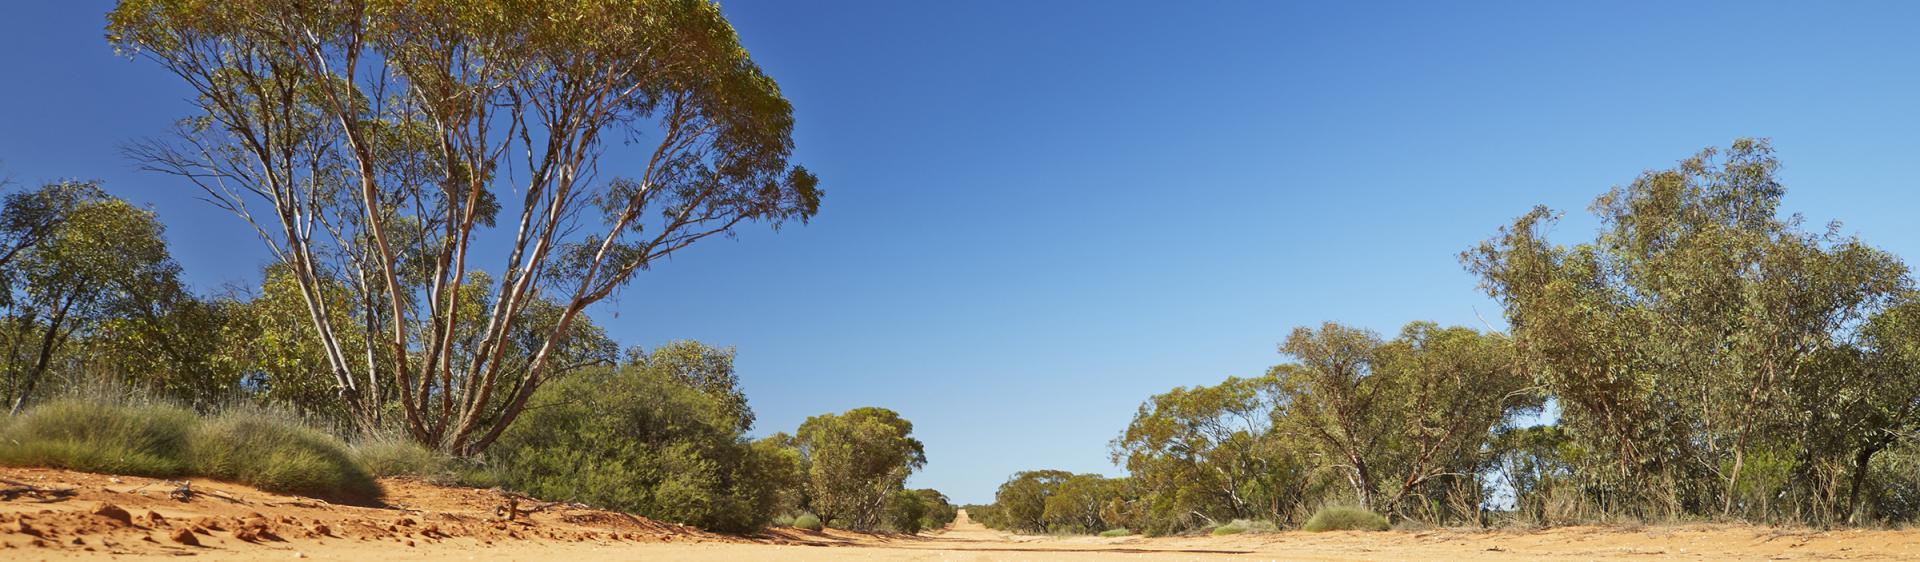 Mungo National Park track, Broken Hill